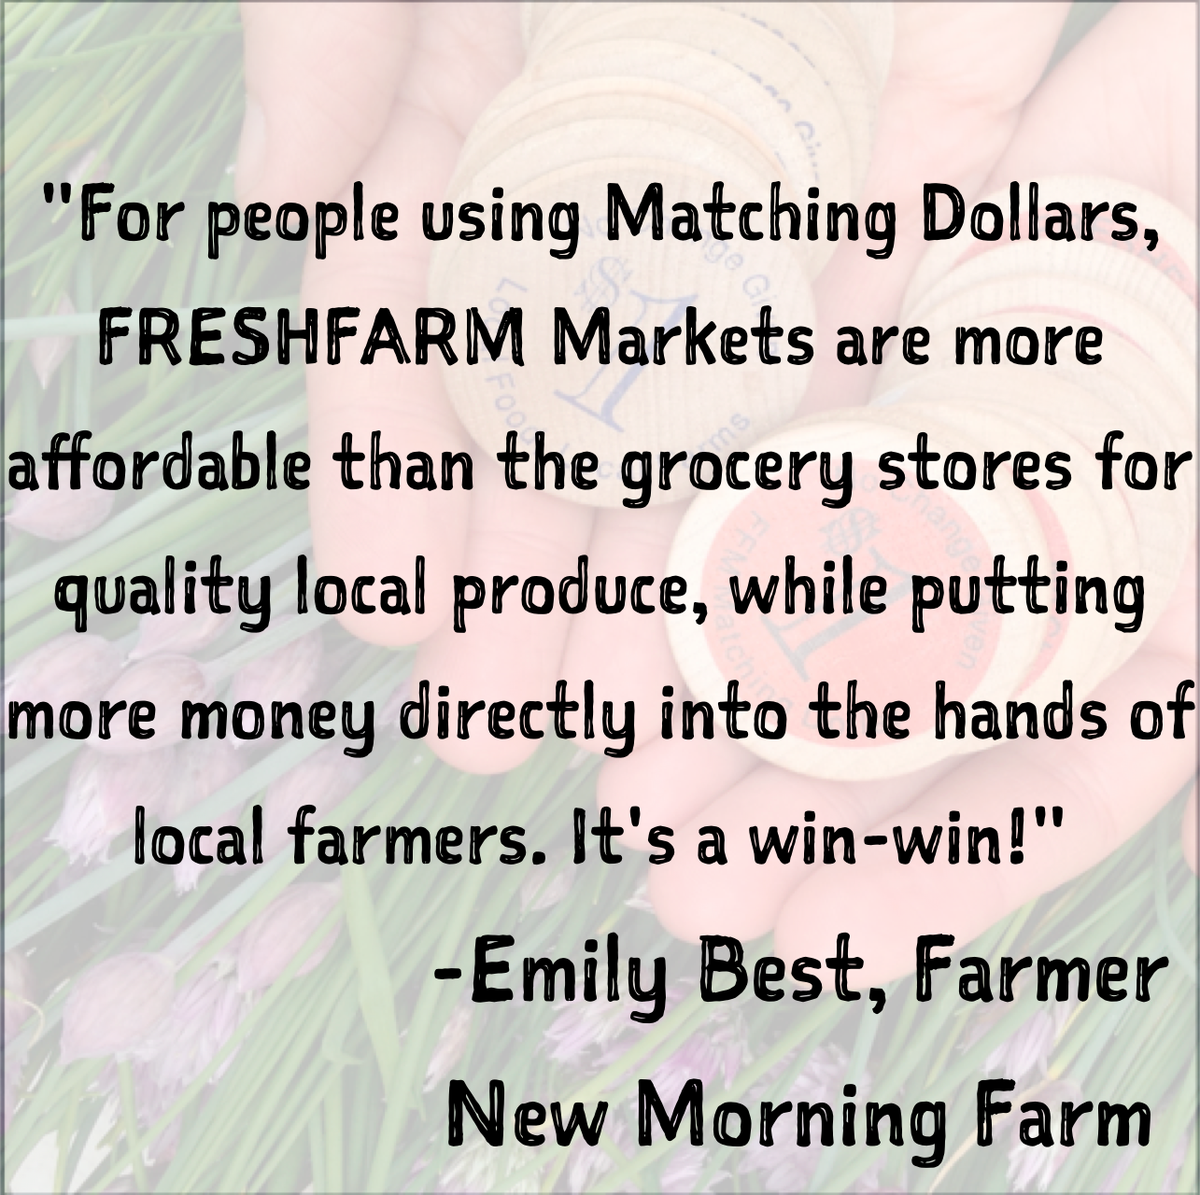 Our Matching Dollars program gives low income shoppers more buying power & we need your help! http://t.co/6KHfqXCbbL http://t.co/6FHJSBlUcB